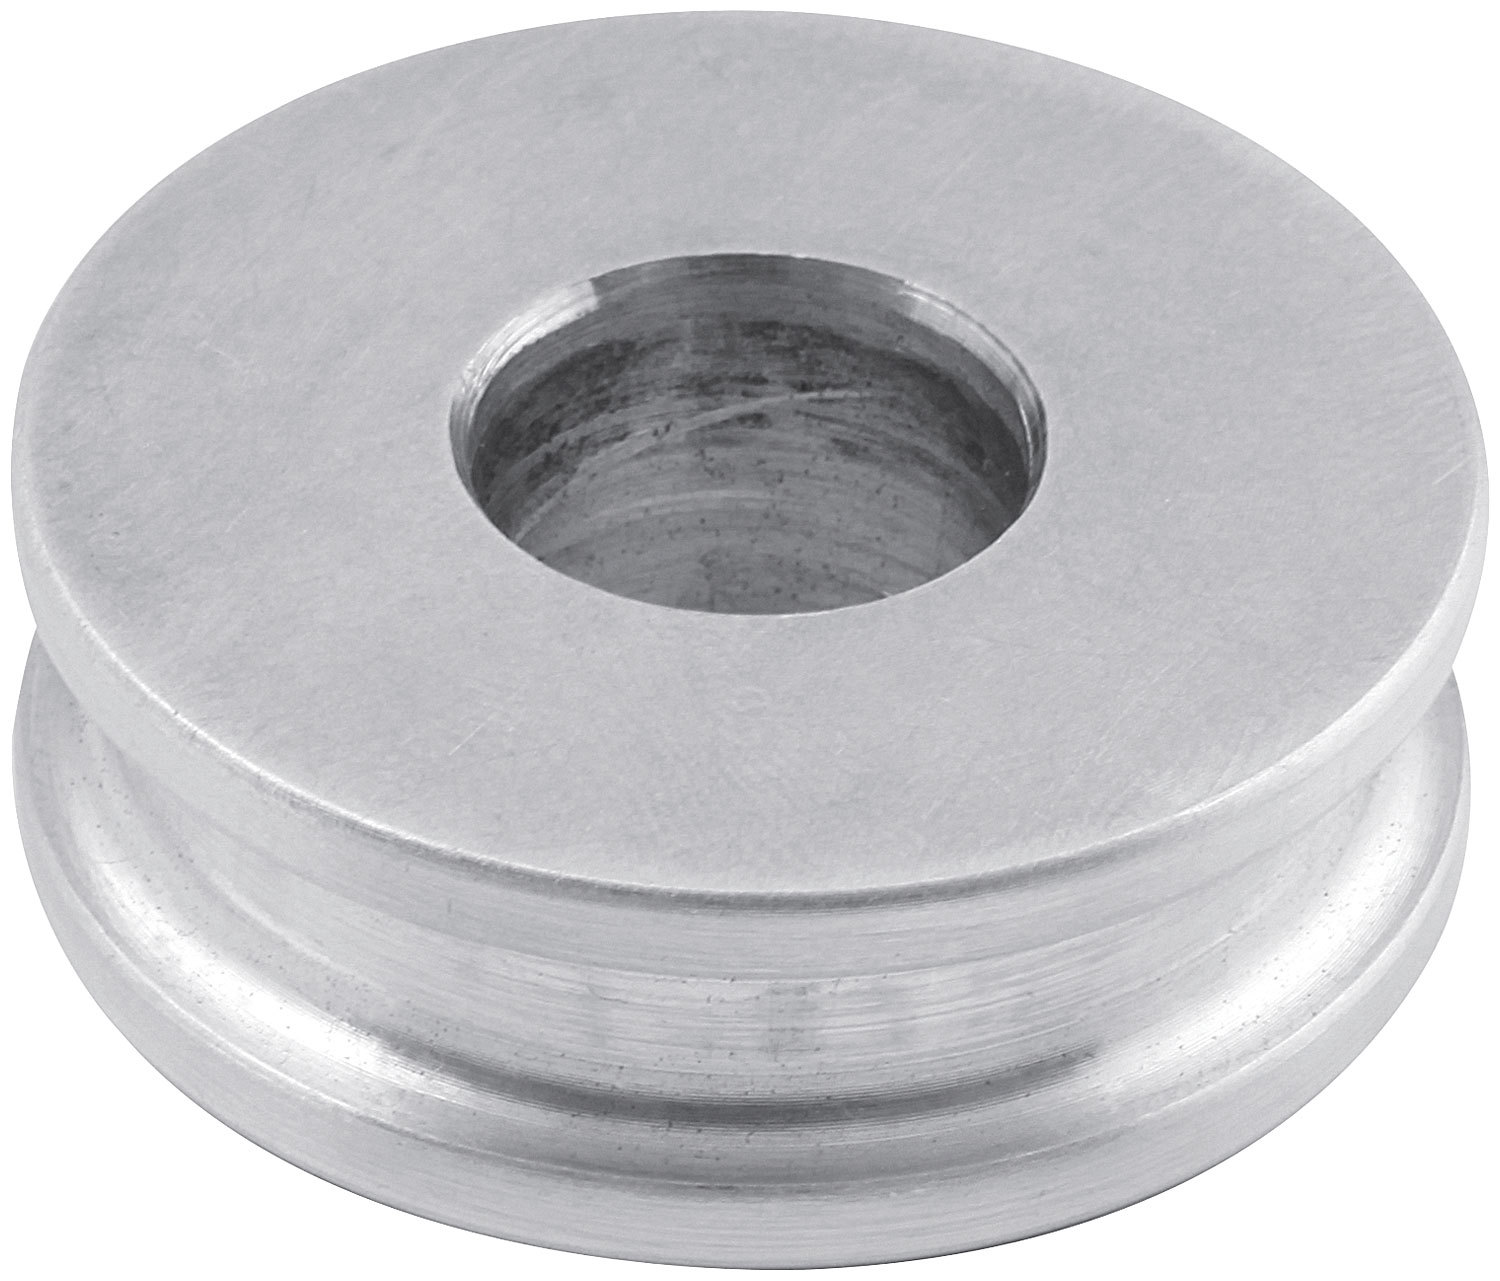 Allstar Performance 18621-10 Motor Mount Spacer, 1/2 in Tall, 1/2 in ID, 1-1/2 in OD, Aluminum, Natural, Set of 10